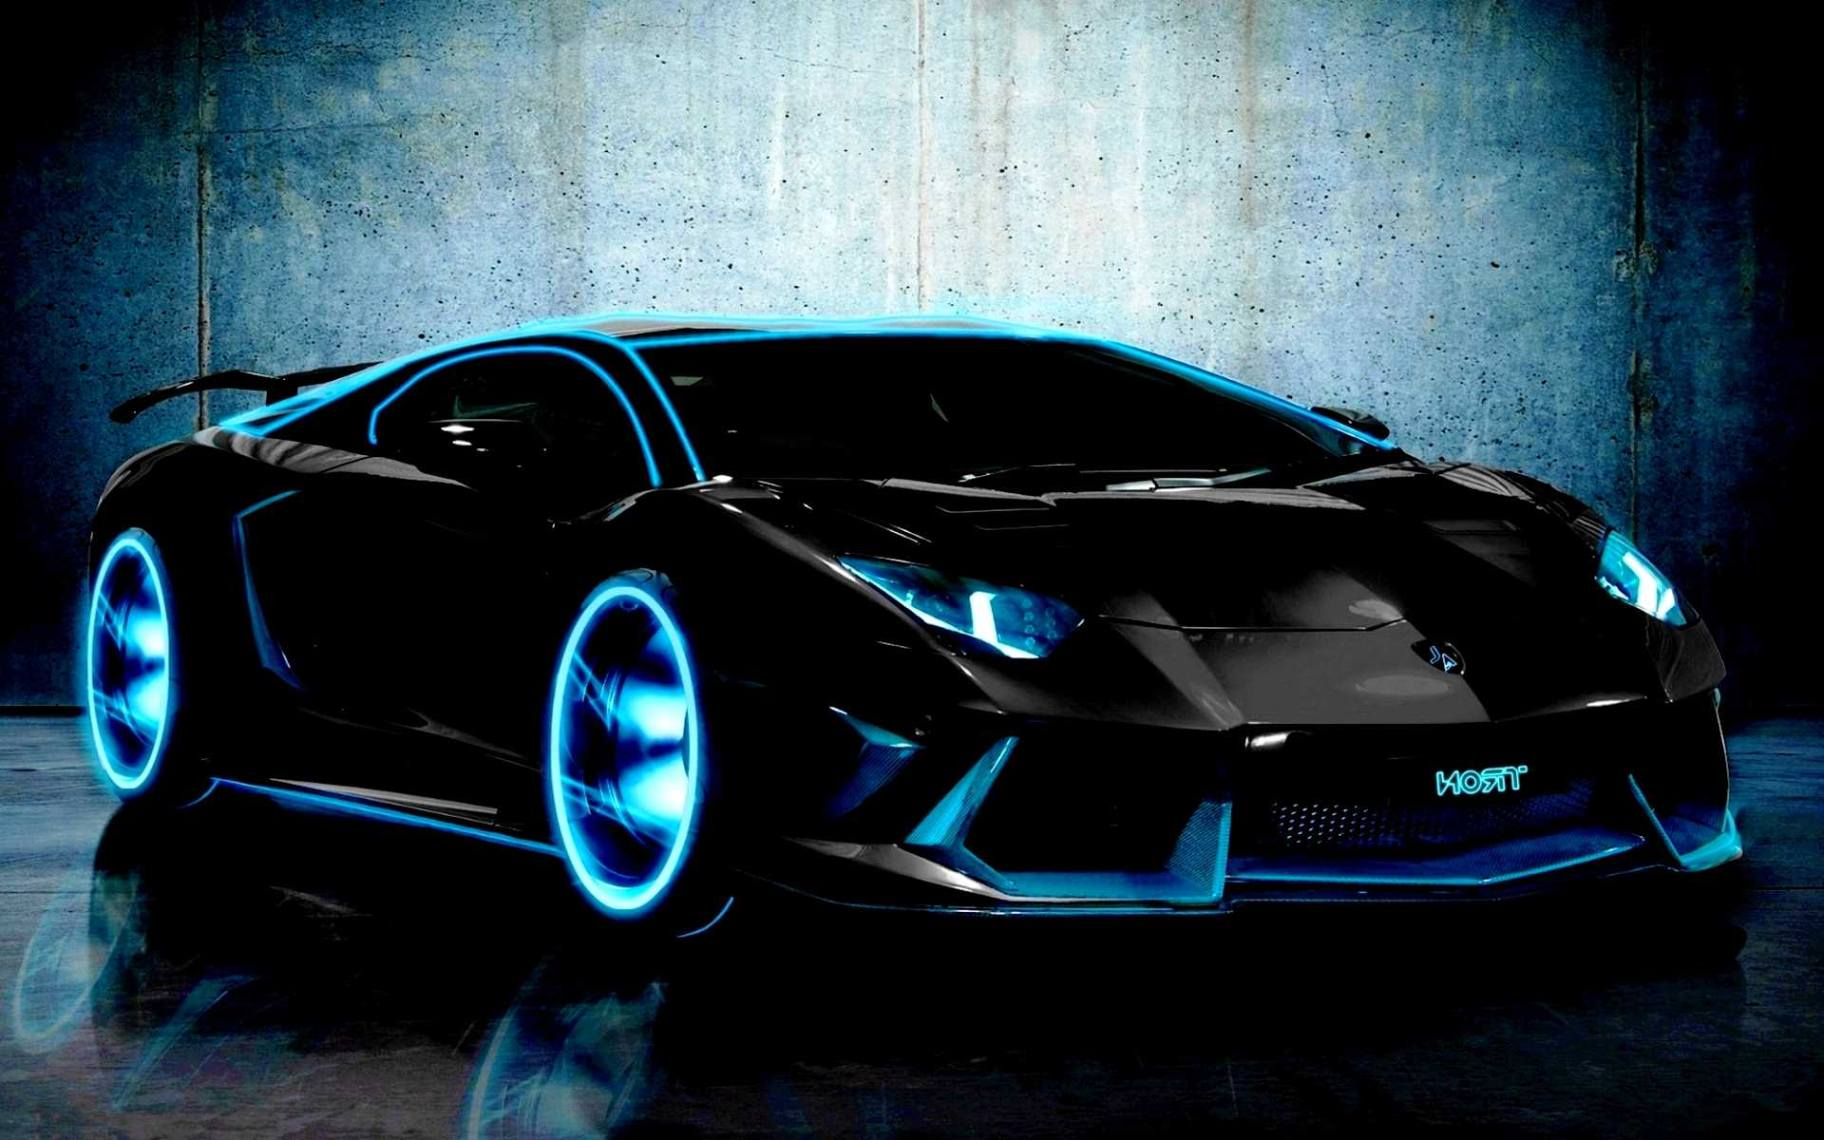 Cool Lamborghini Wallpapers Wallpapersafari